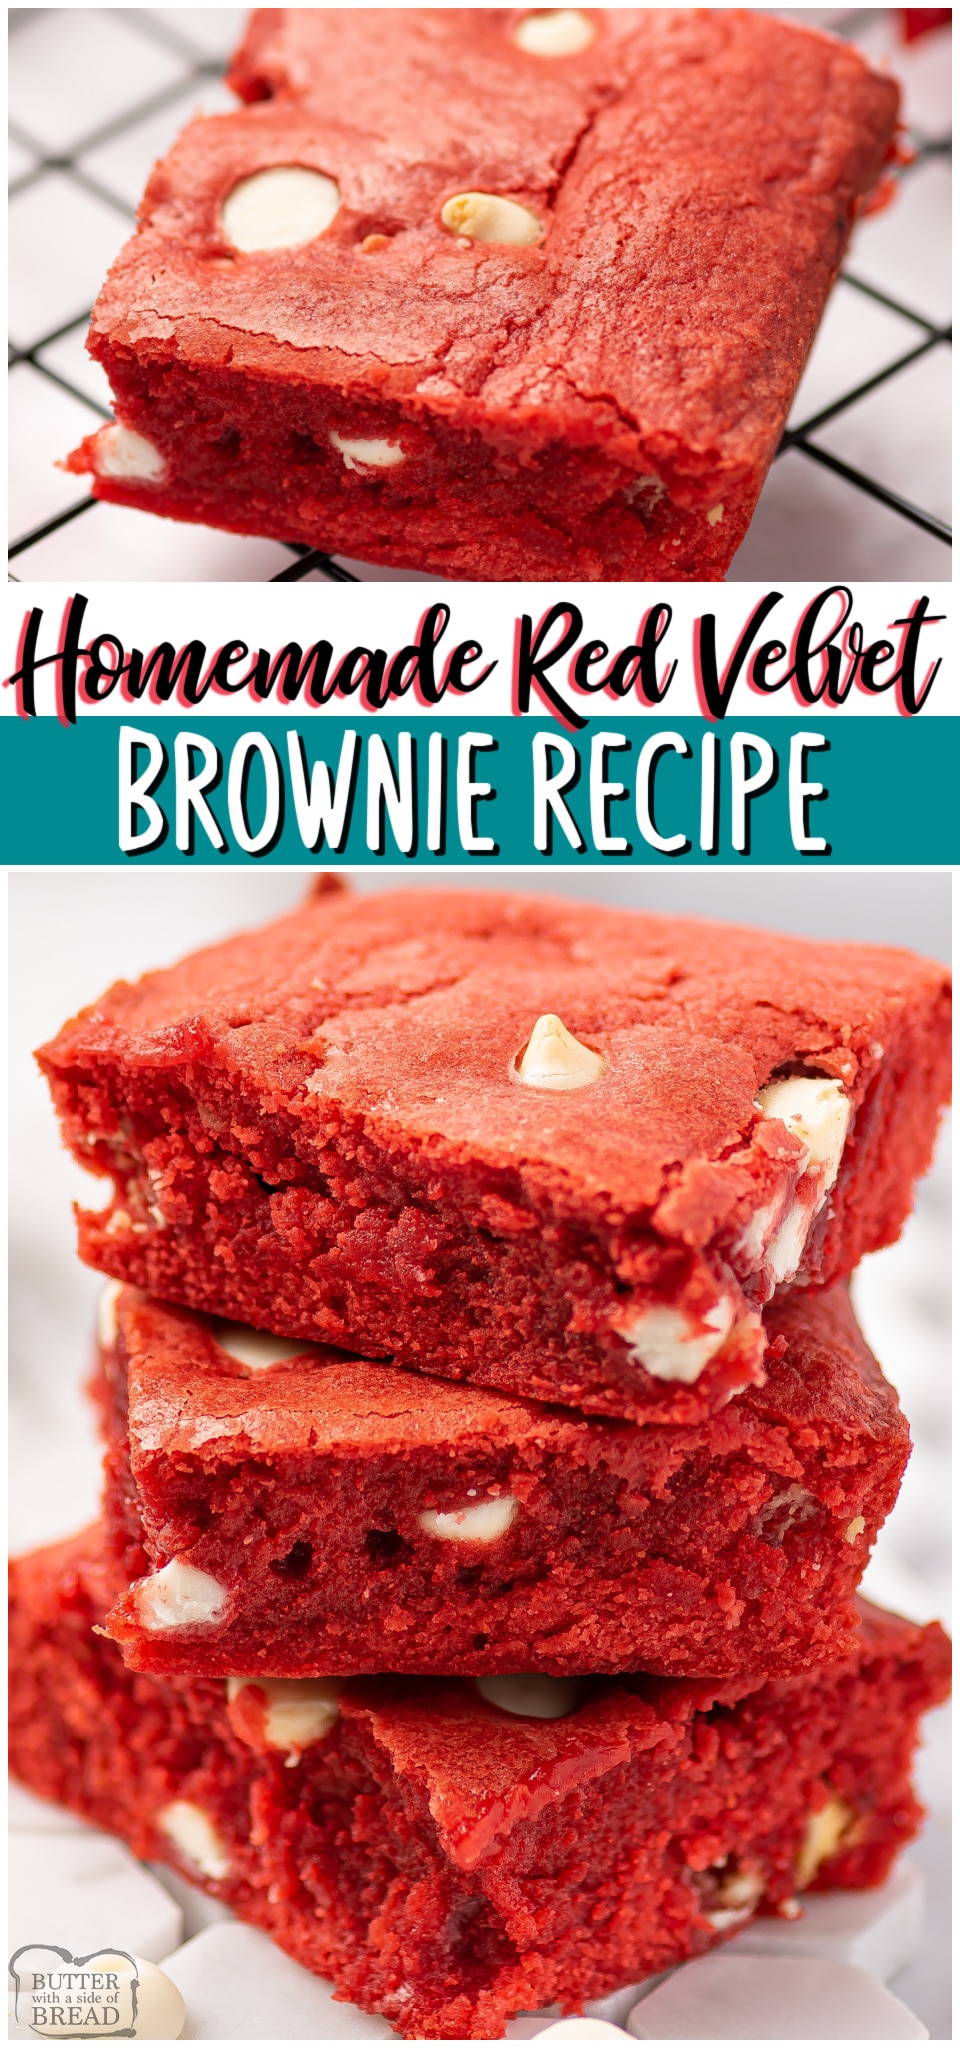 Red velvet brownies are a rich, chocolaty brownie with red velvet color, scattered with chocolate chips. Homemade Red Velvet Brownies perfect for Valentine's day! #redvelvet #brownies #dessert #baking #Valentines #easyrecipe from BUTTER WITH A SIDE OF BREAD